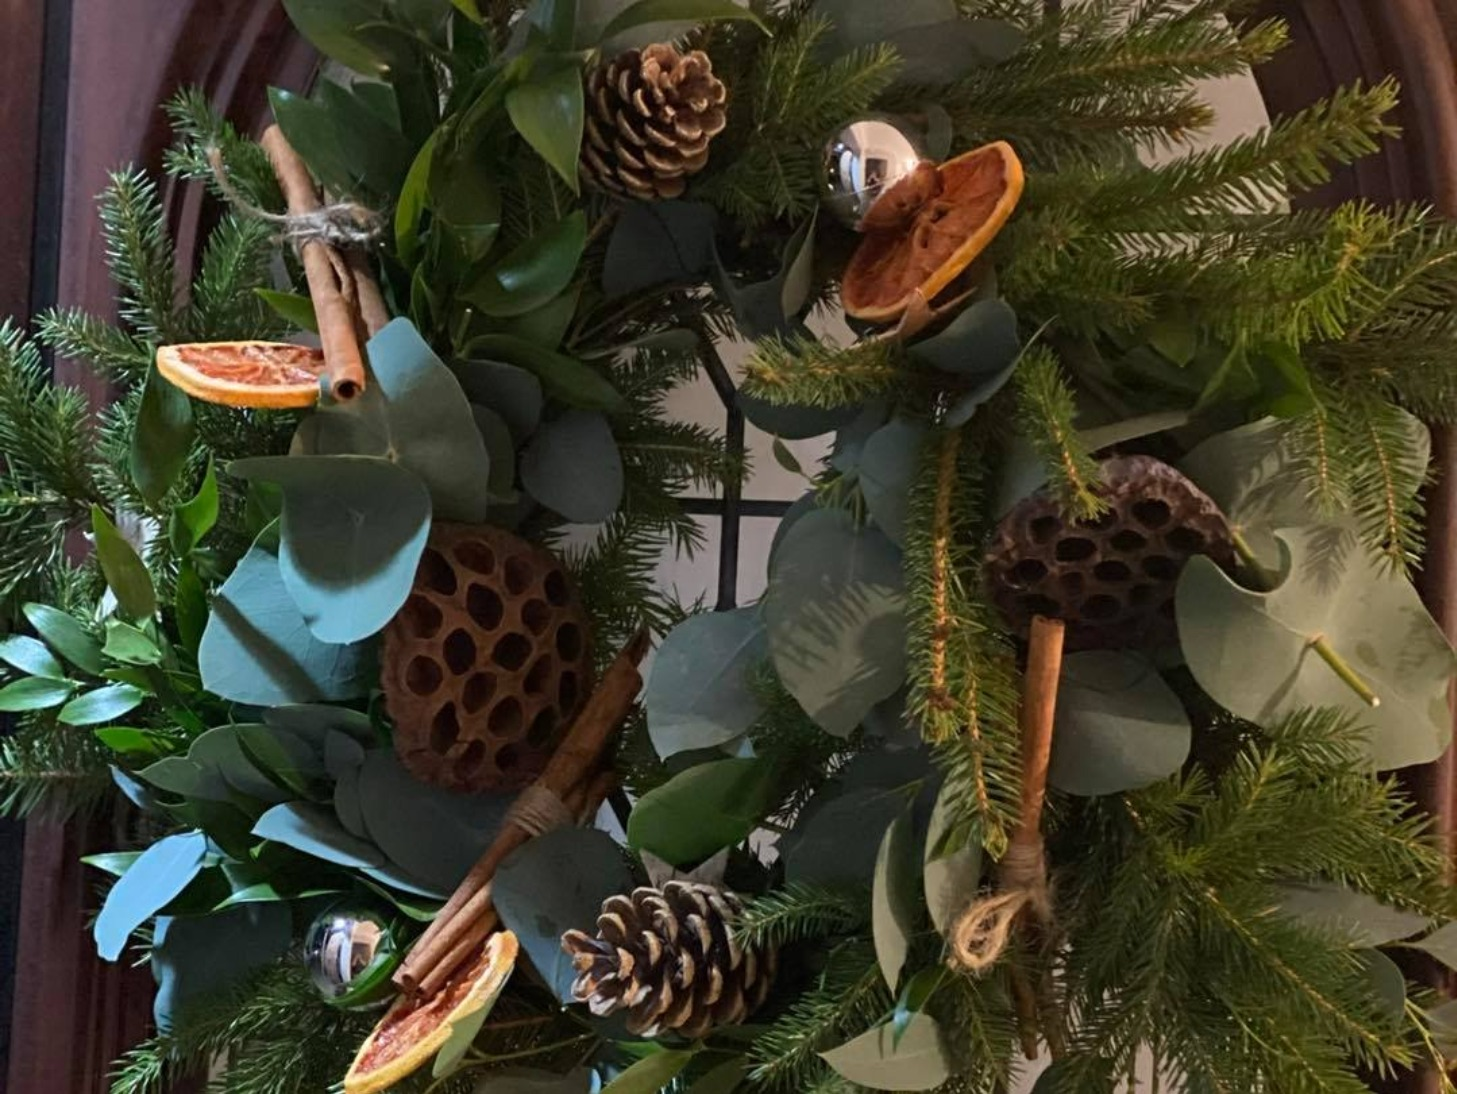 Festive Afternoon Tea and Wreath Making (Wednesday 8th December Workshop Room 1: 10am-1pm) DEPOSIT